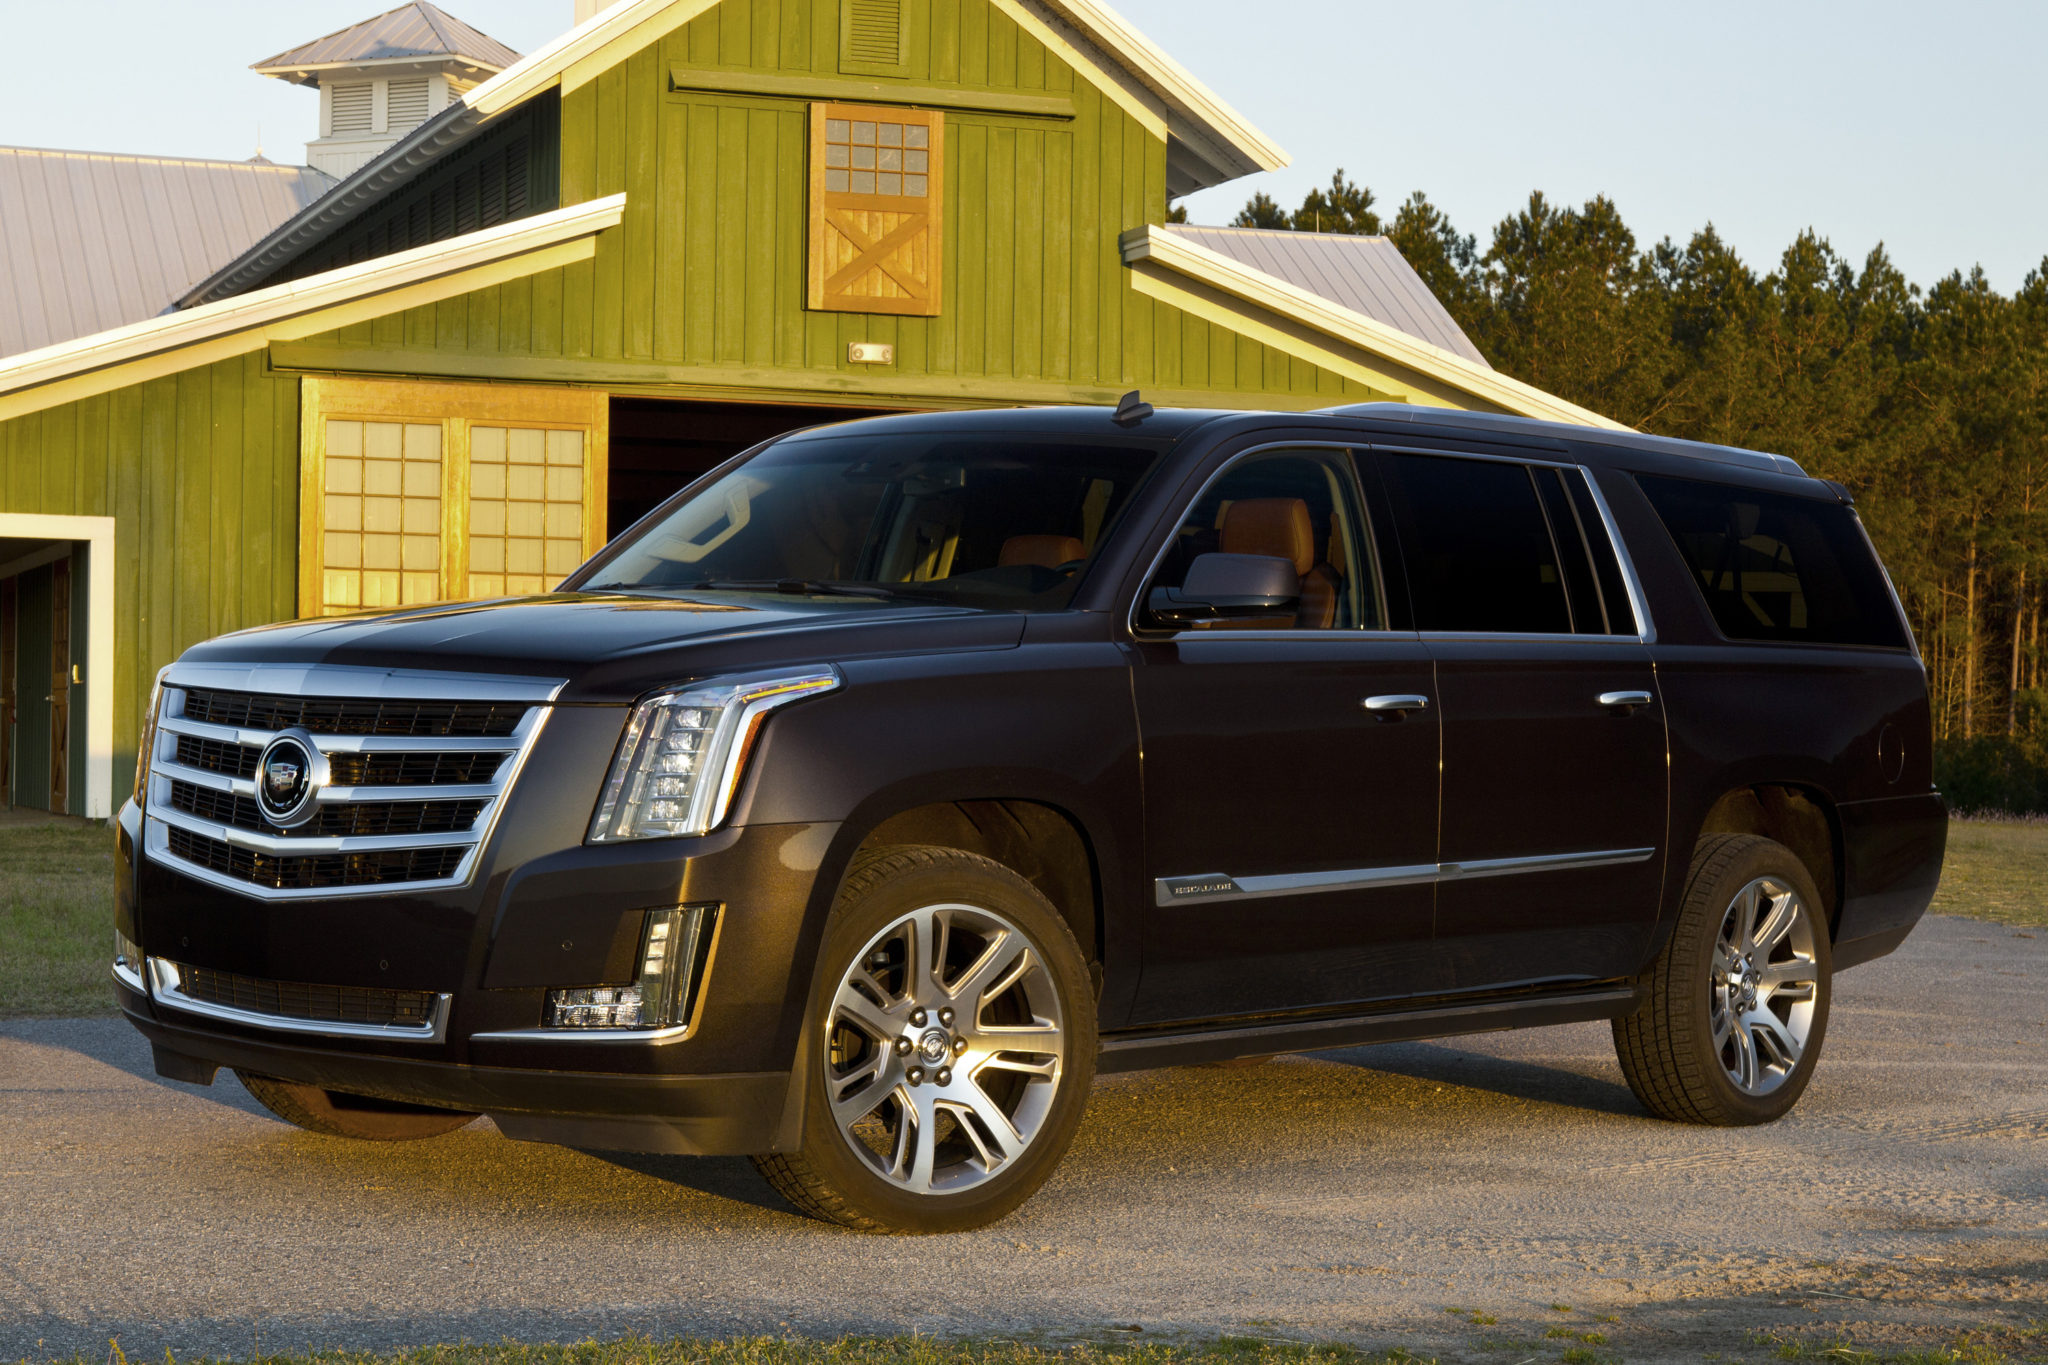 background images white whit escalade hd cadillac wallpaper